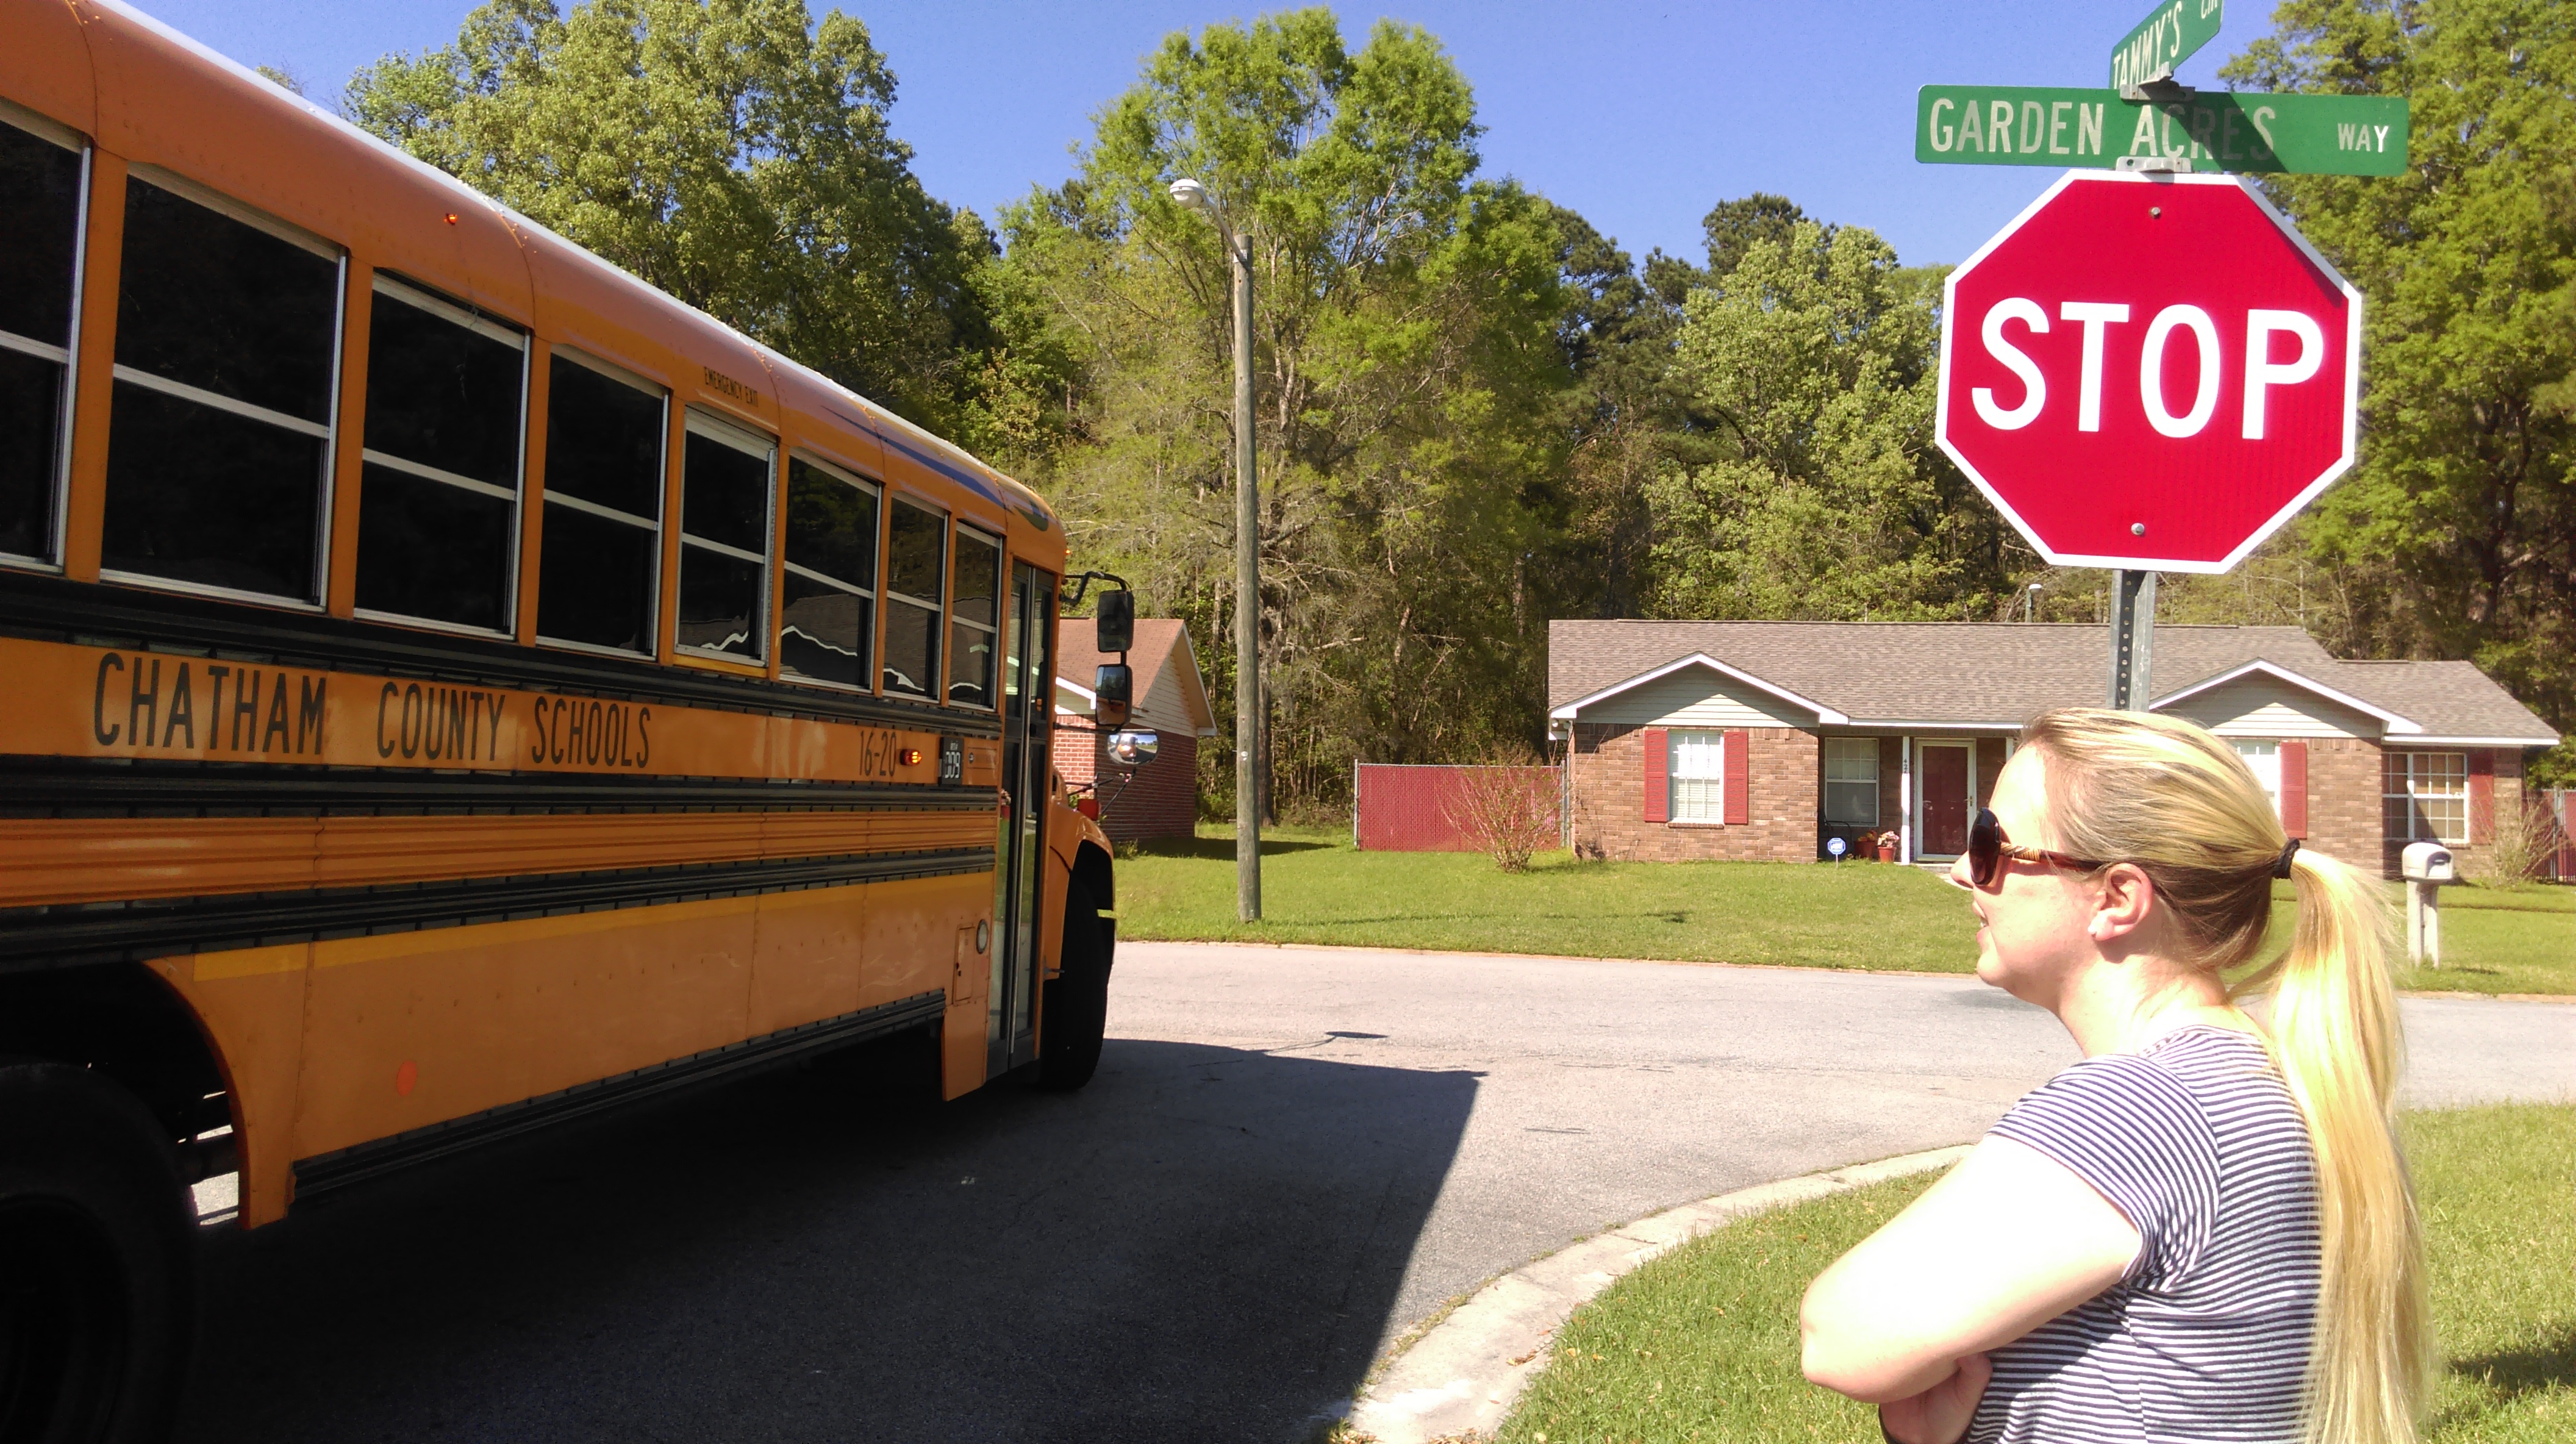 SCCPSS Prepares To Take Over Student Busing | Georgia Public ...